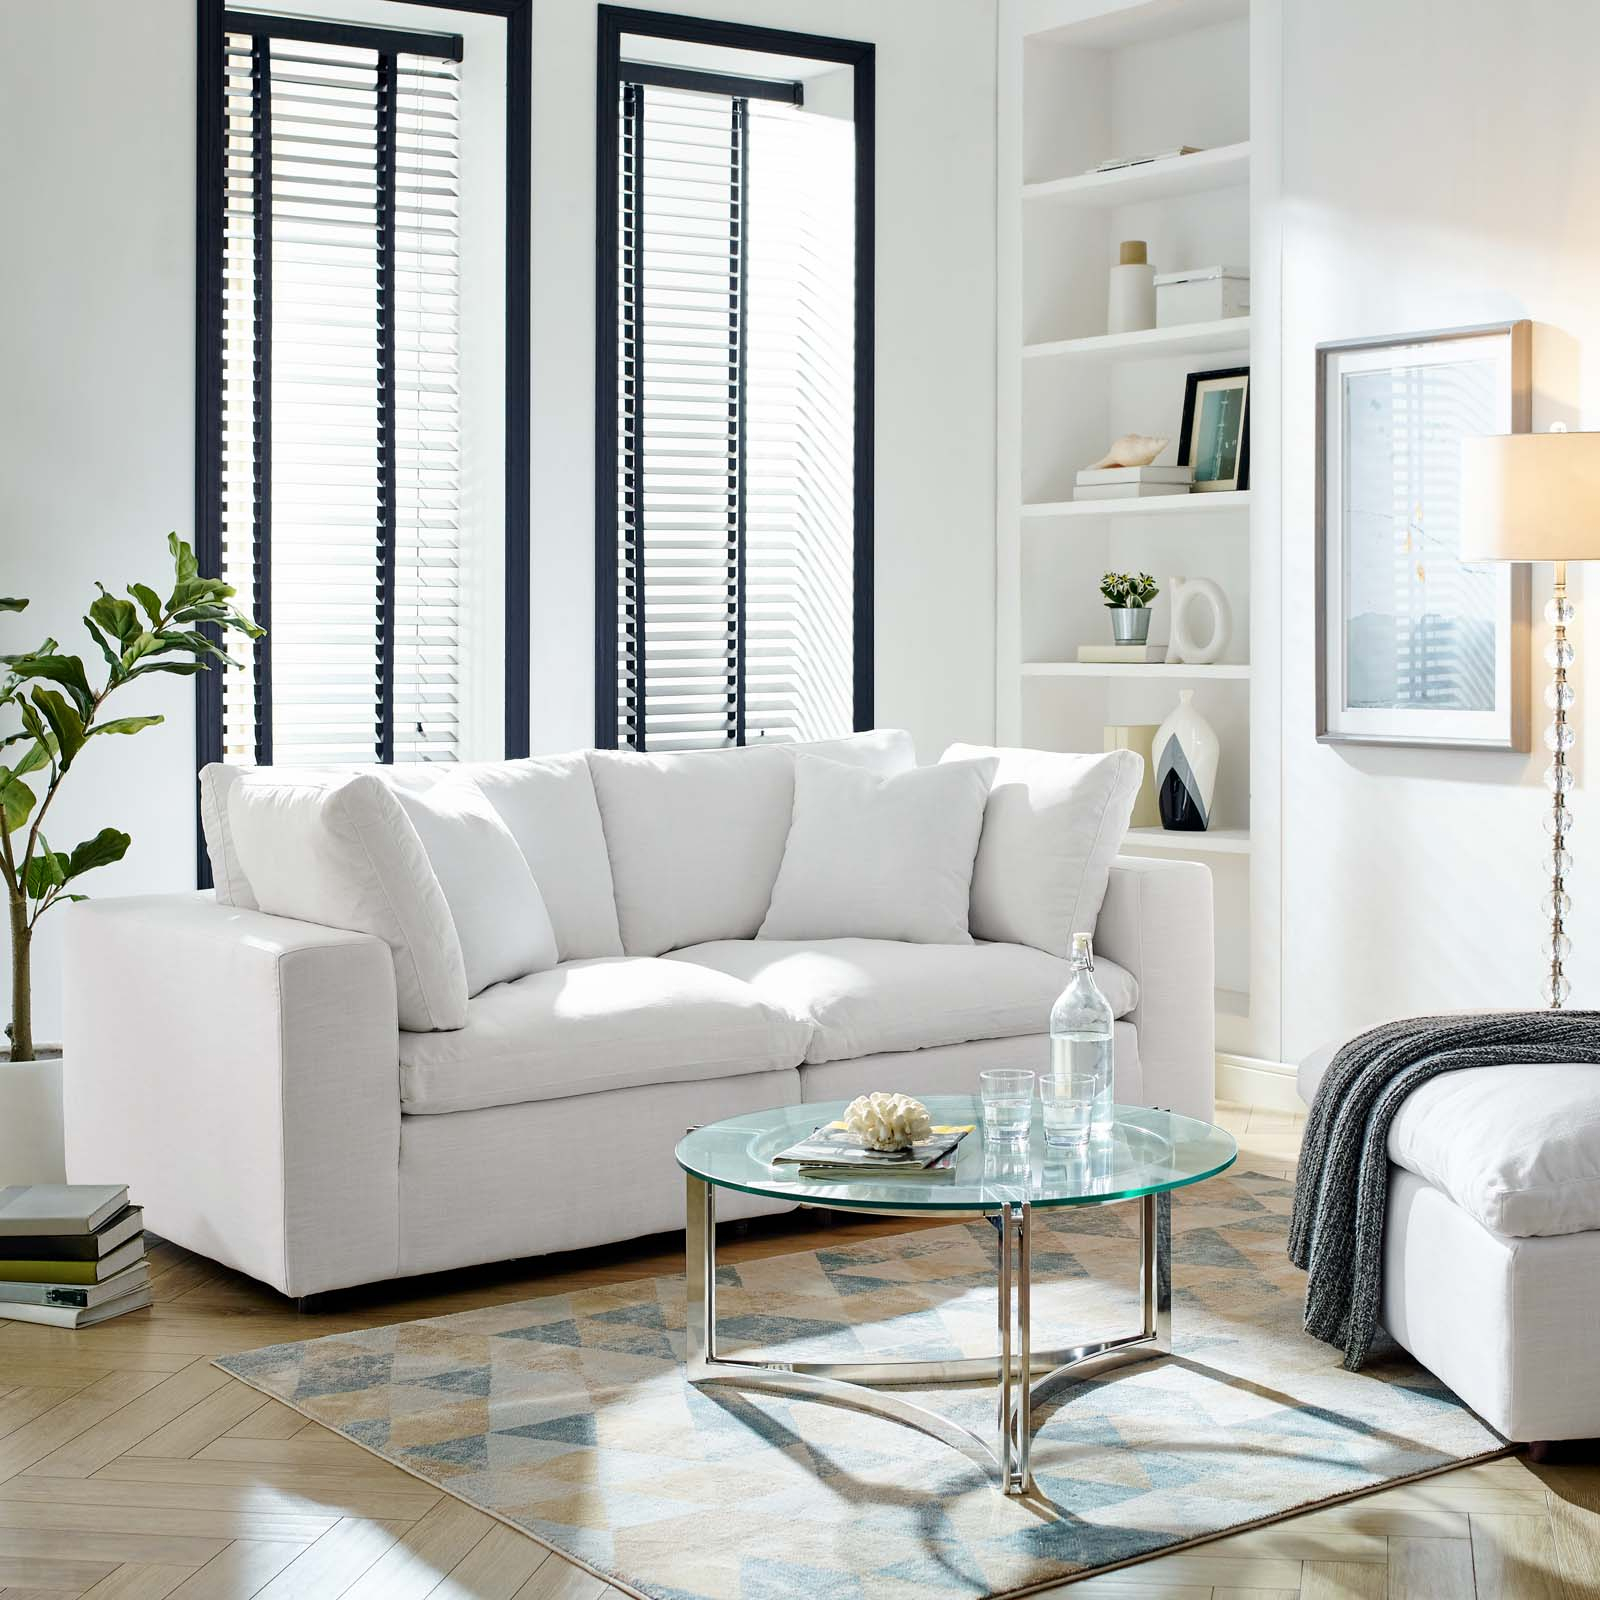 Commix Down Filled Overstuffed 2 Piece Sectional Sofa Set Regarding Down Filled Sectional Sofas (View 15 of 15)